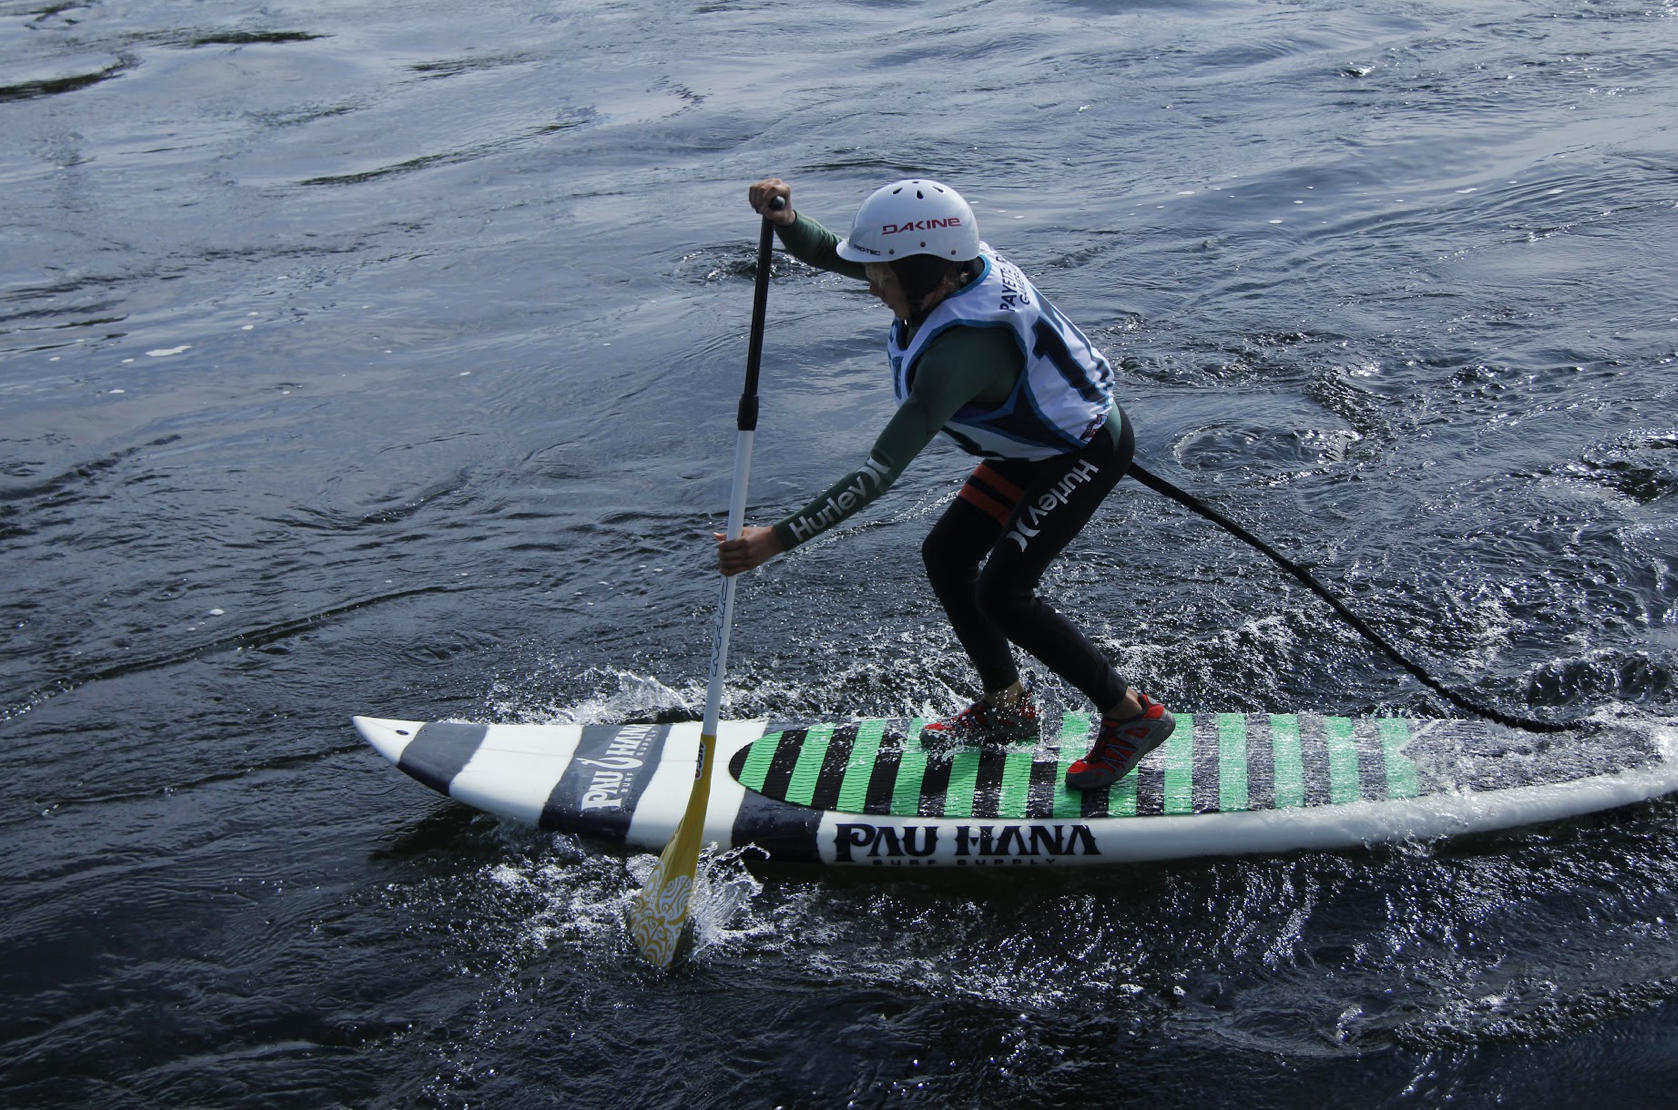 Sup river surfing on the Pau Hana surf supply white water board